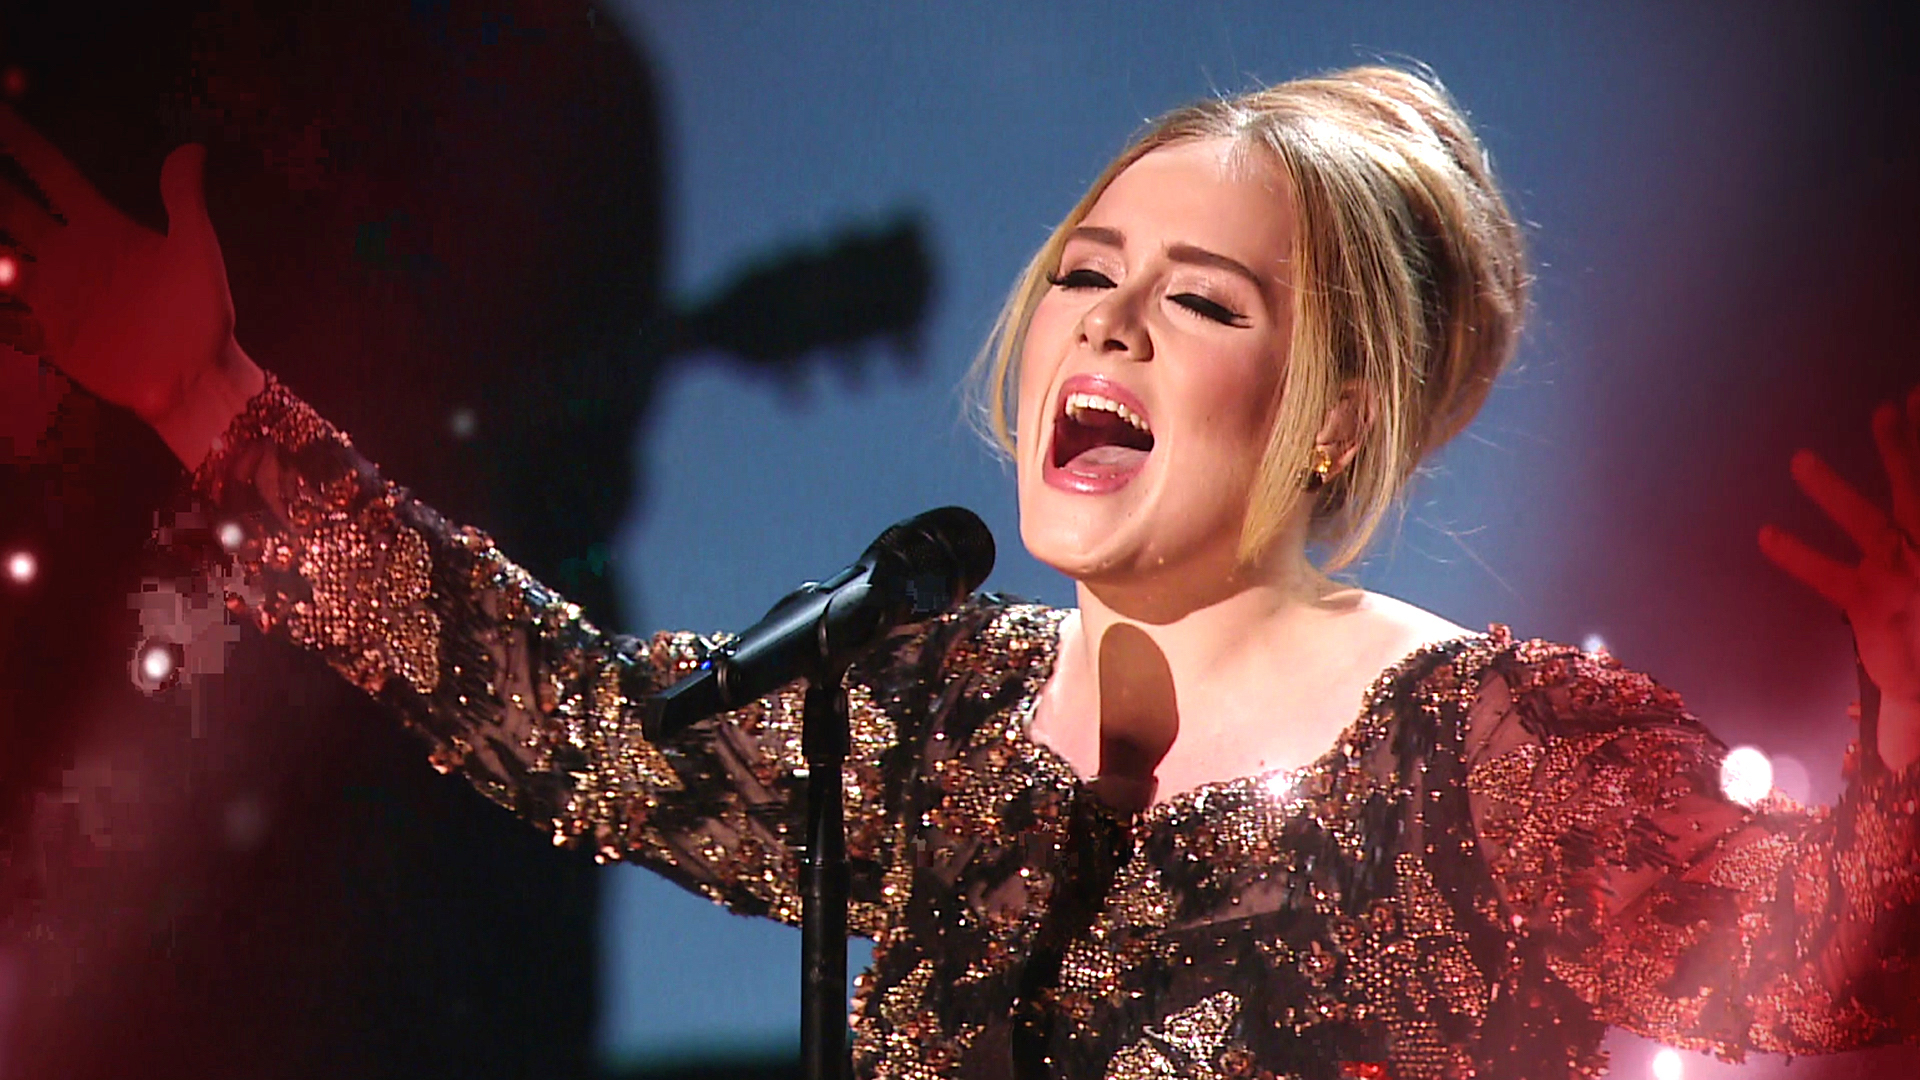 Adele Wallpaper For Computer